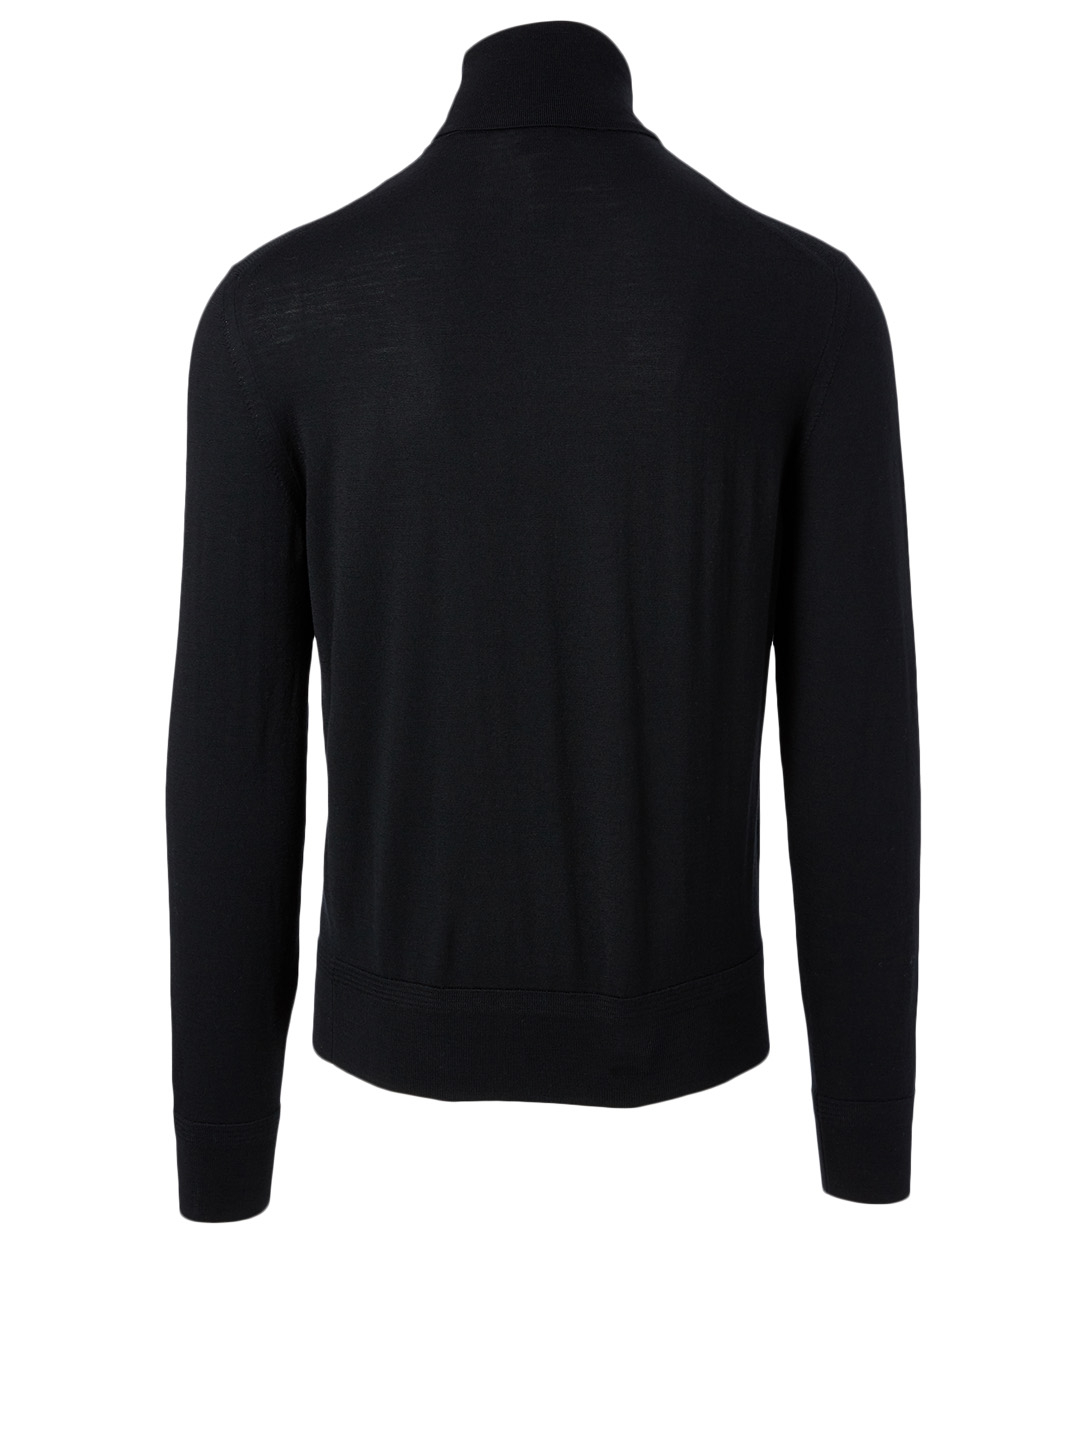 TOM FORD Wool Turtleneck Top Men's Black